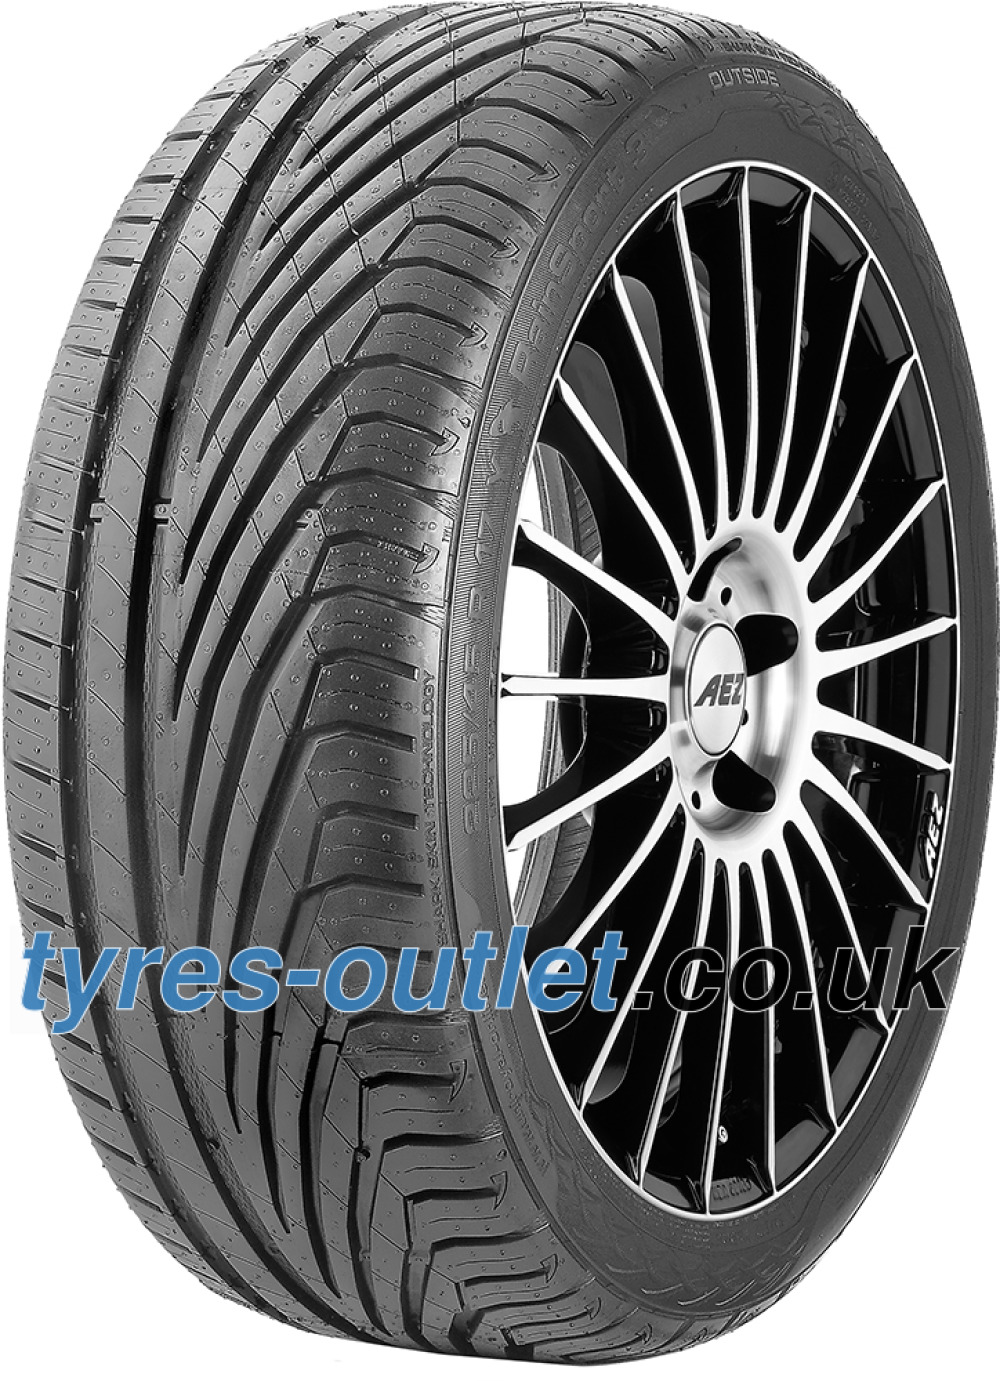 Uniroyal RainSport 3 ( 225/45 R17 94Y XL with kerbing rib )